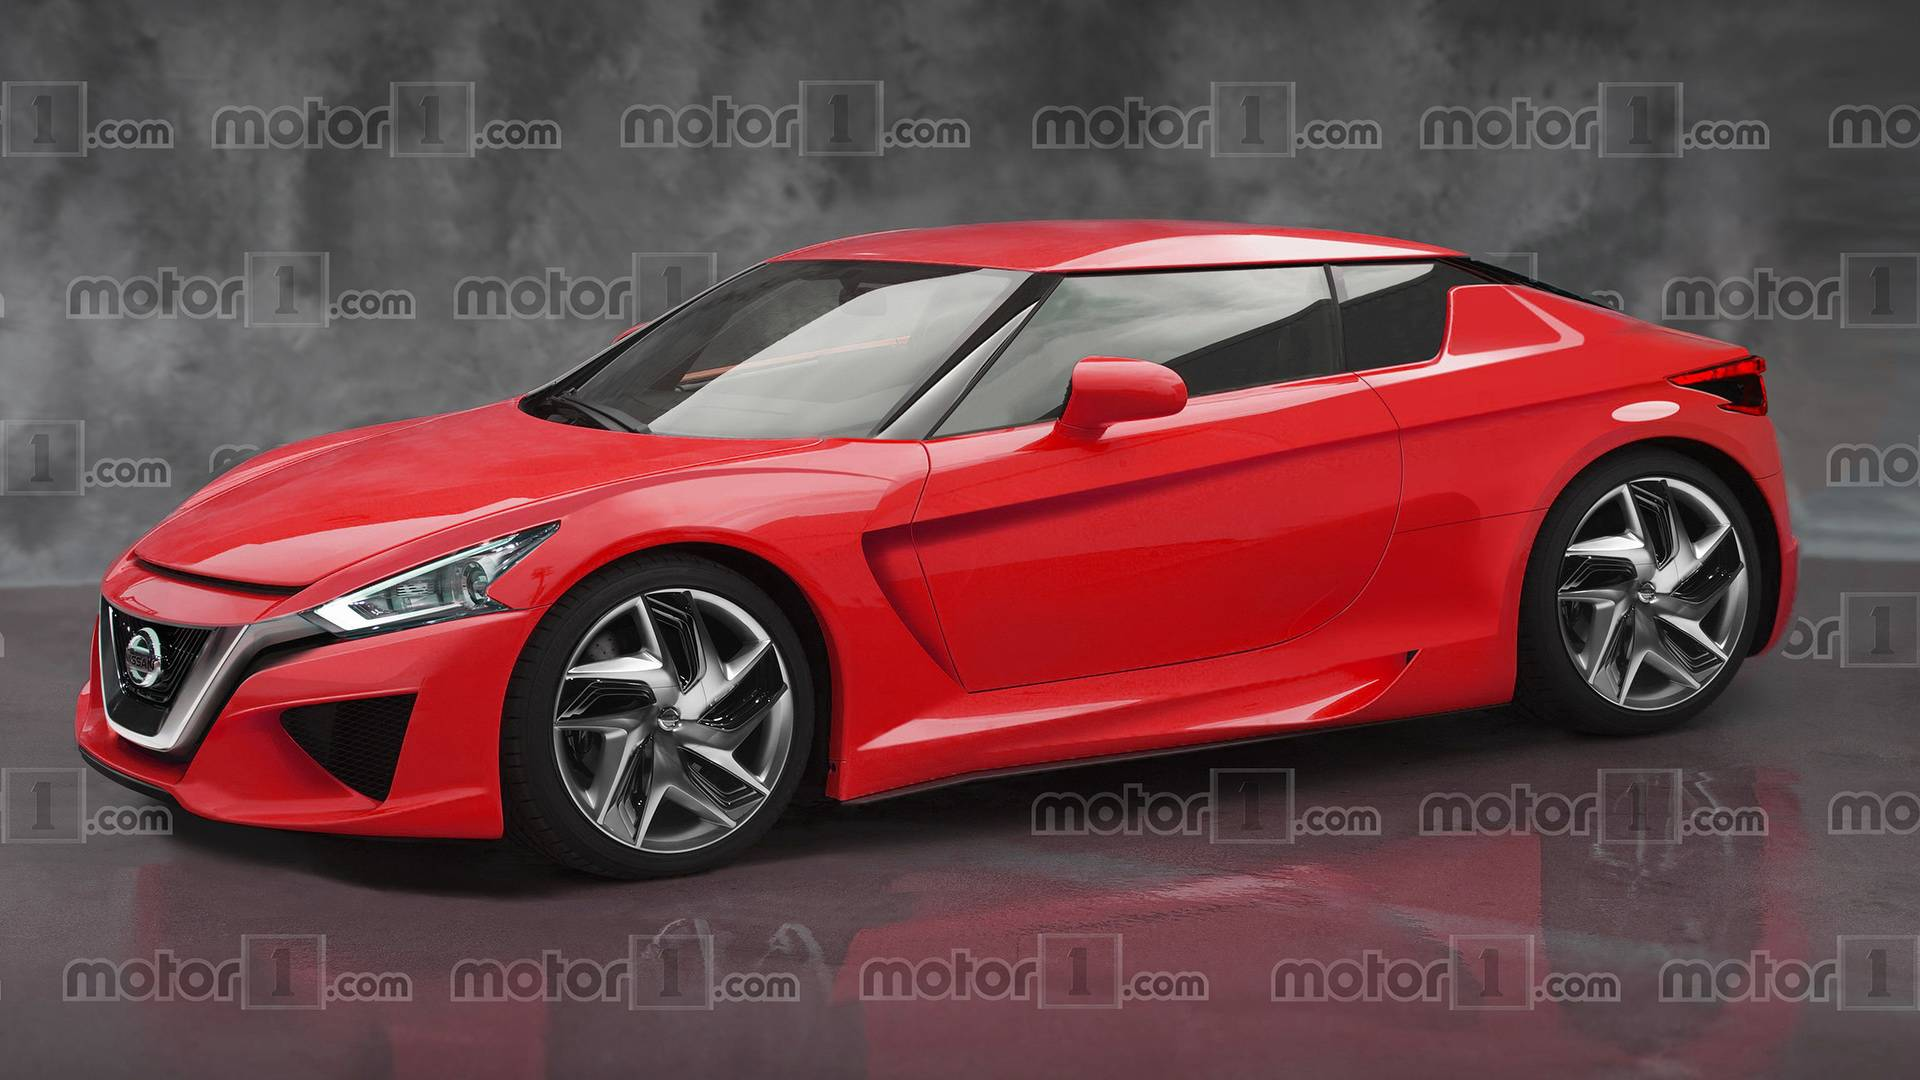 91 A 2020 Nissan Z Car Concept and Review